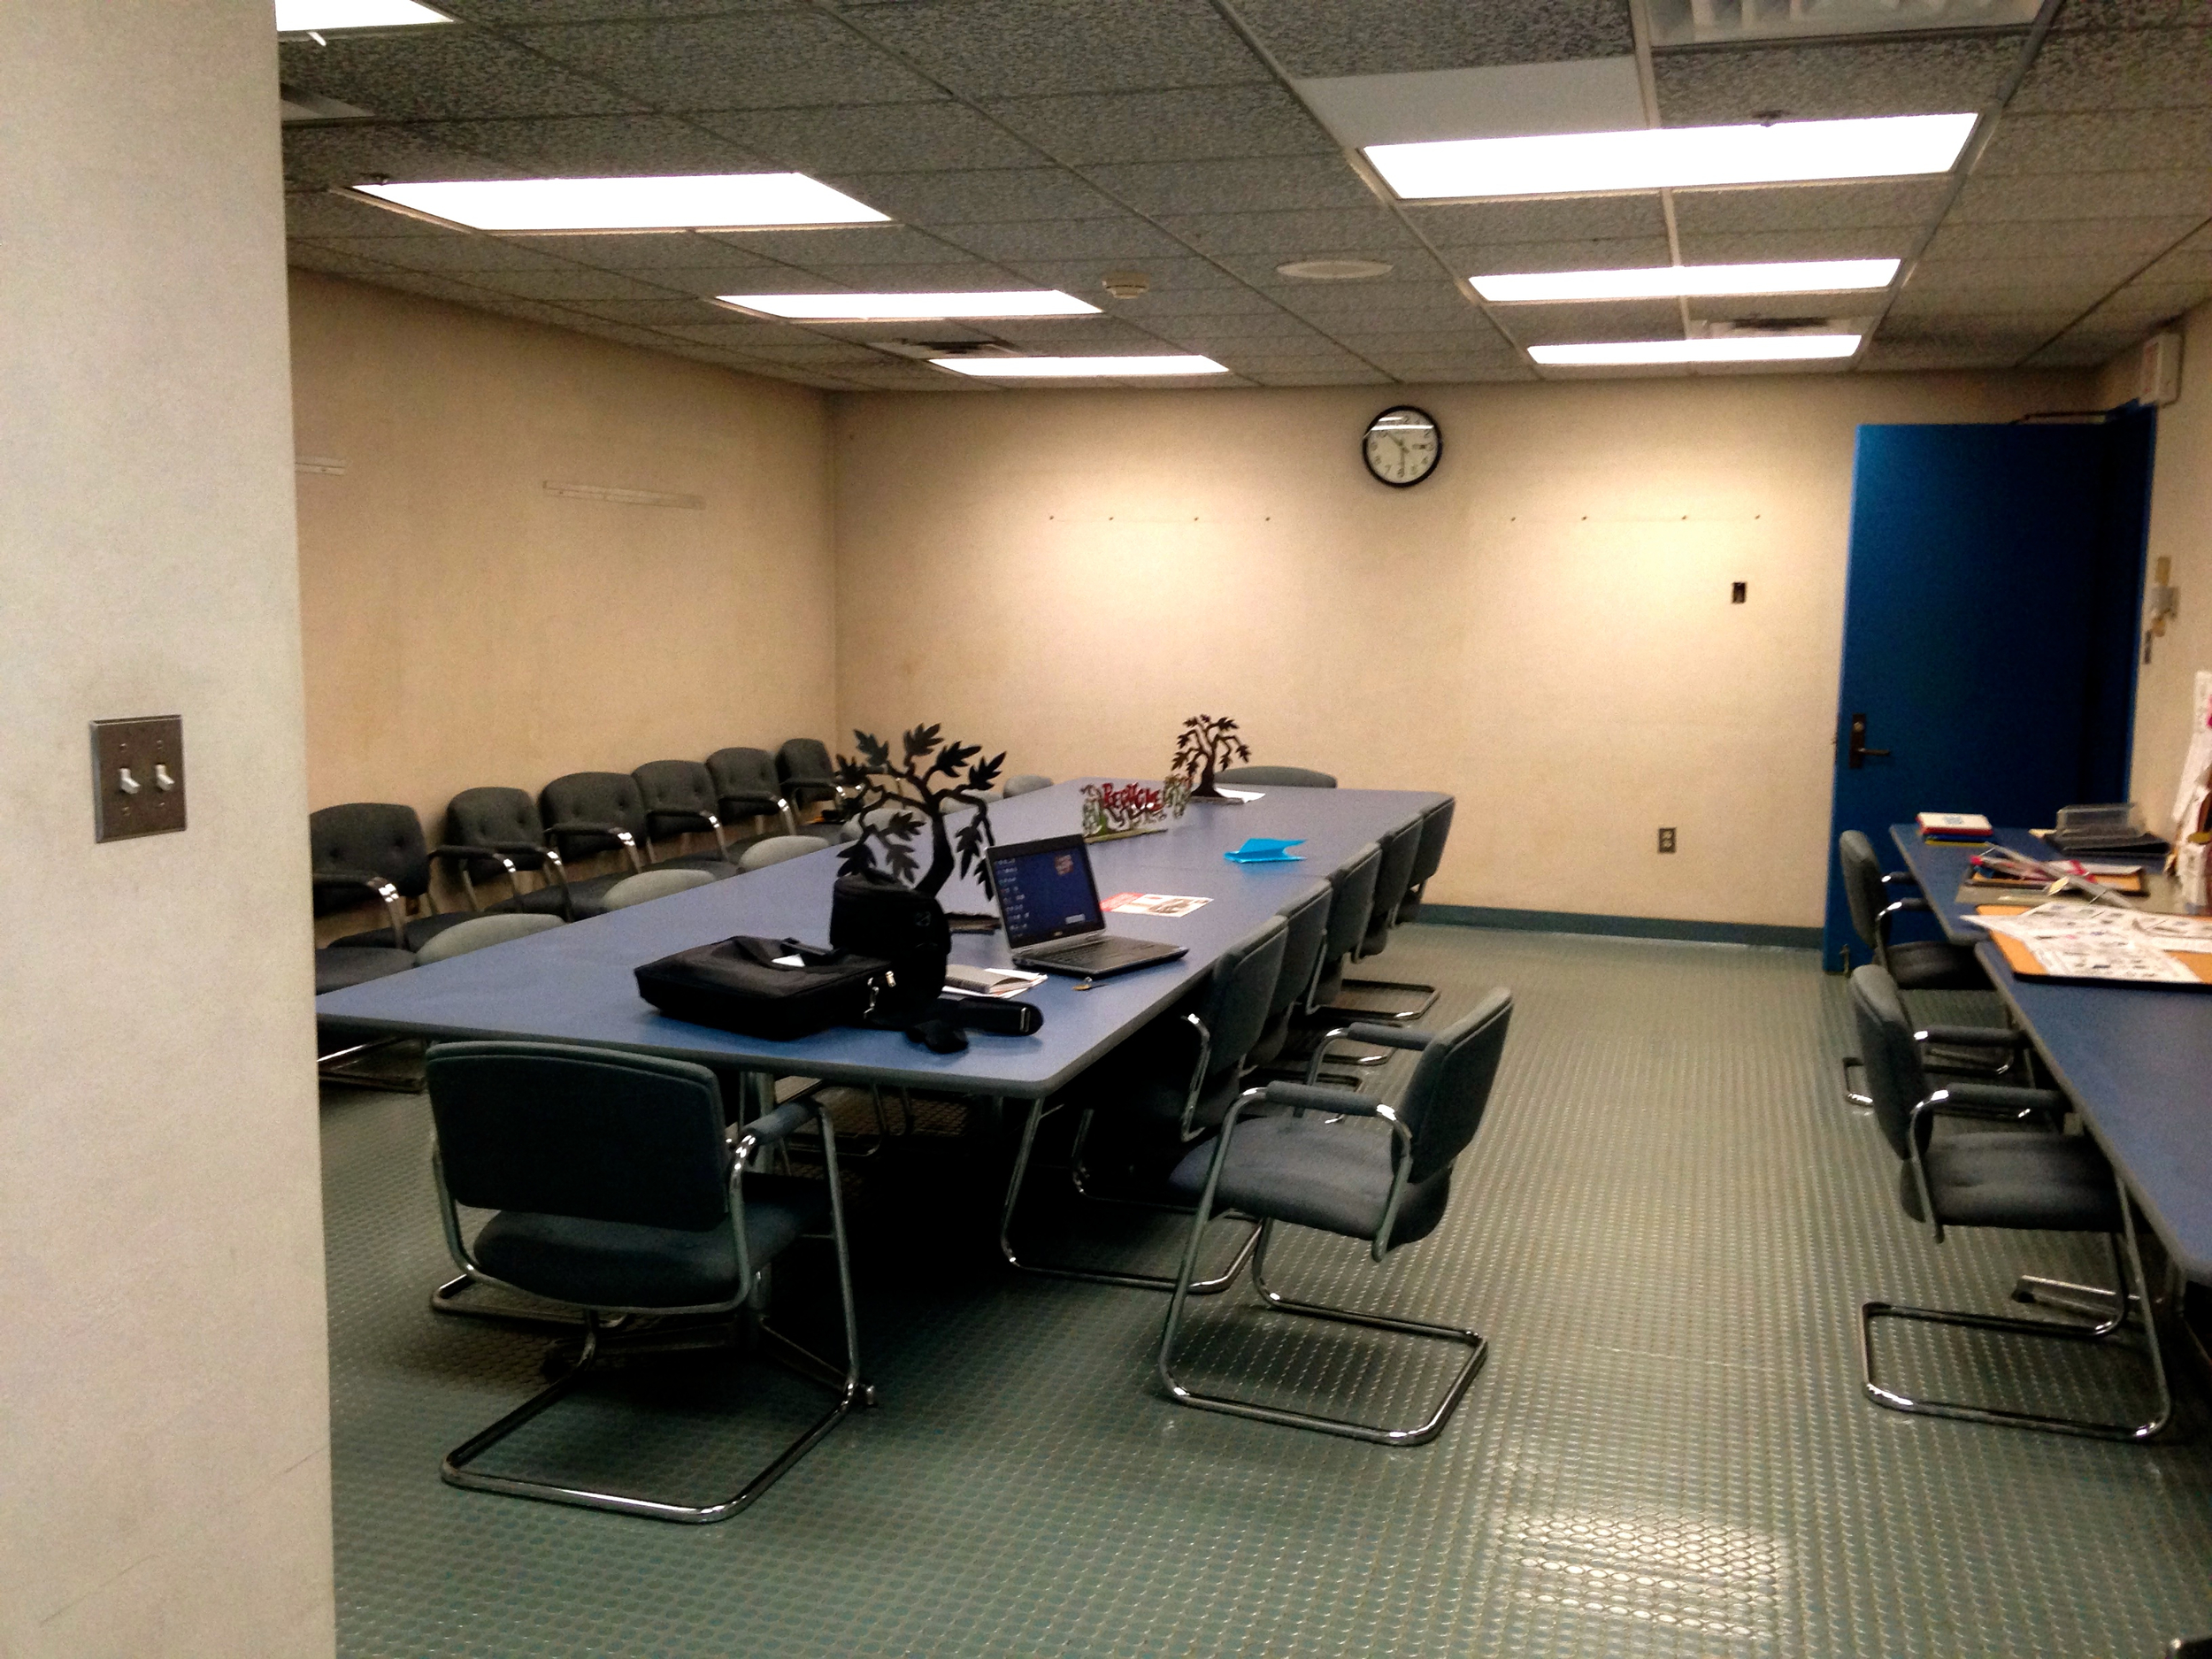 the Westchester Materials Recovery Facility (MRF) conference room BEFORE.